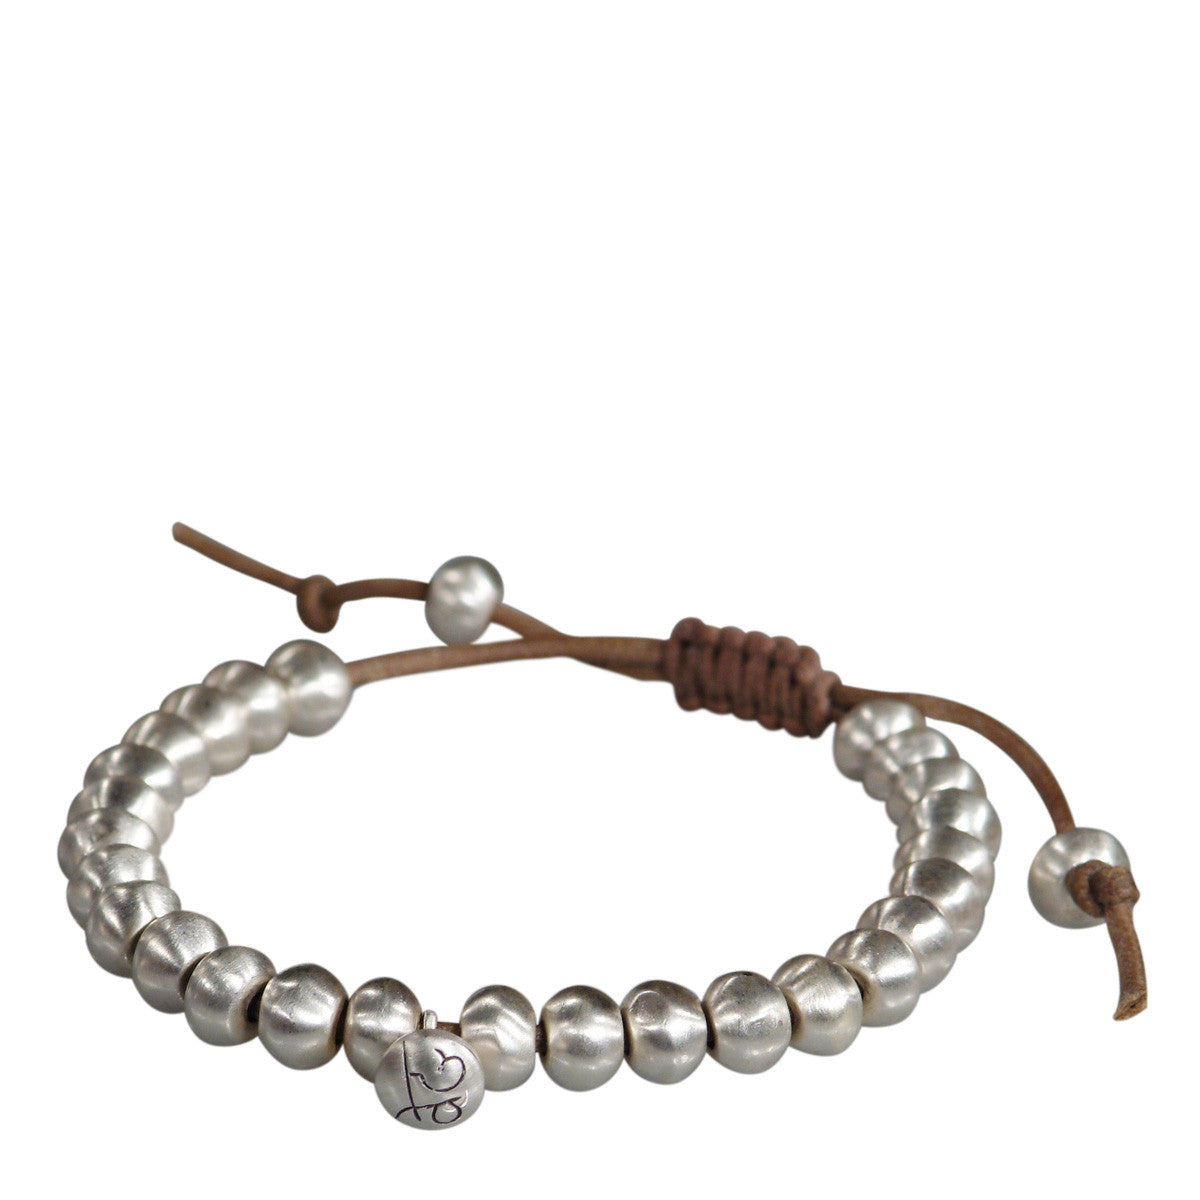 Men's Sterling Silver Wisdom Beads Bracelet on Cord